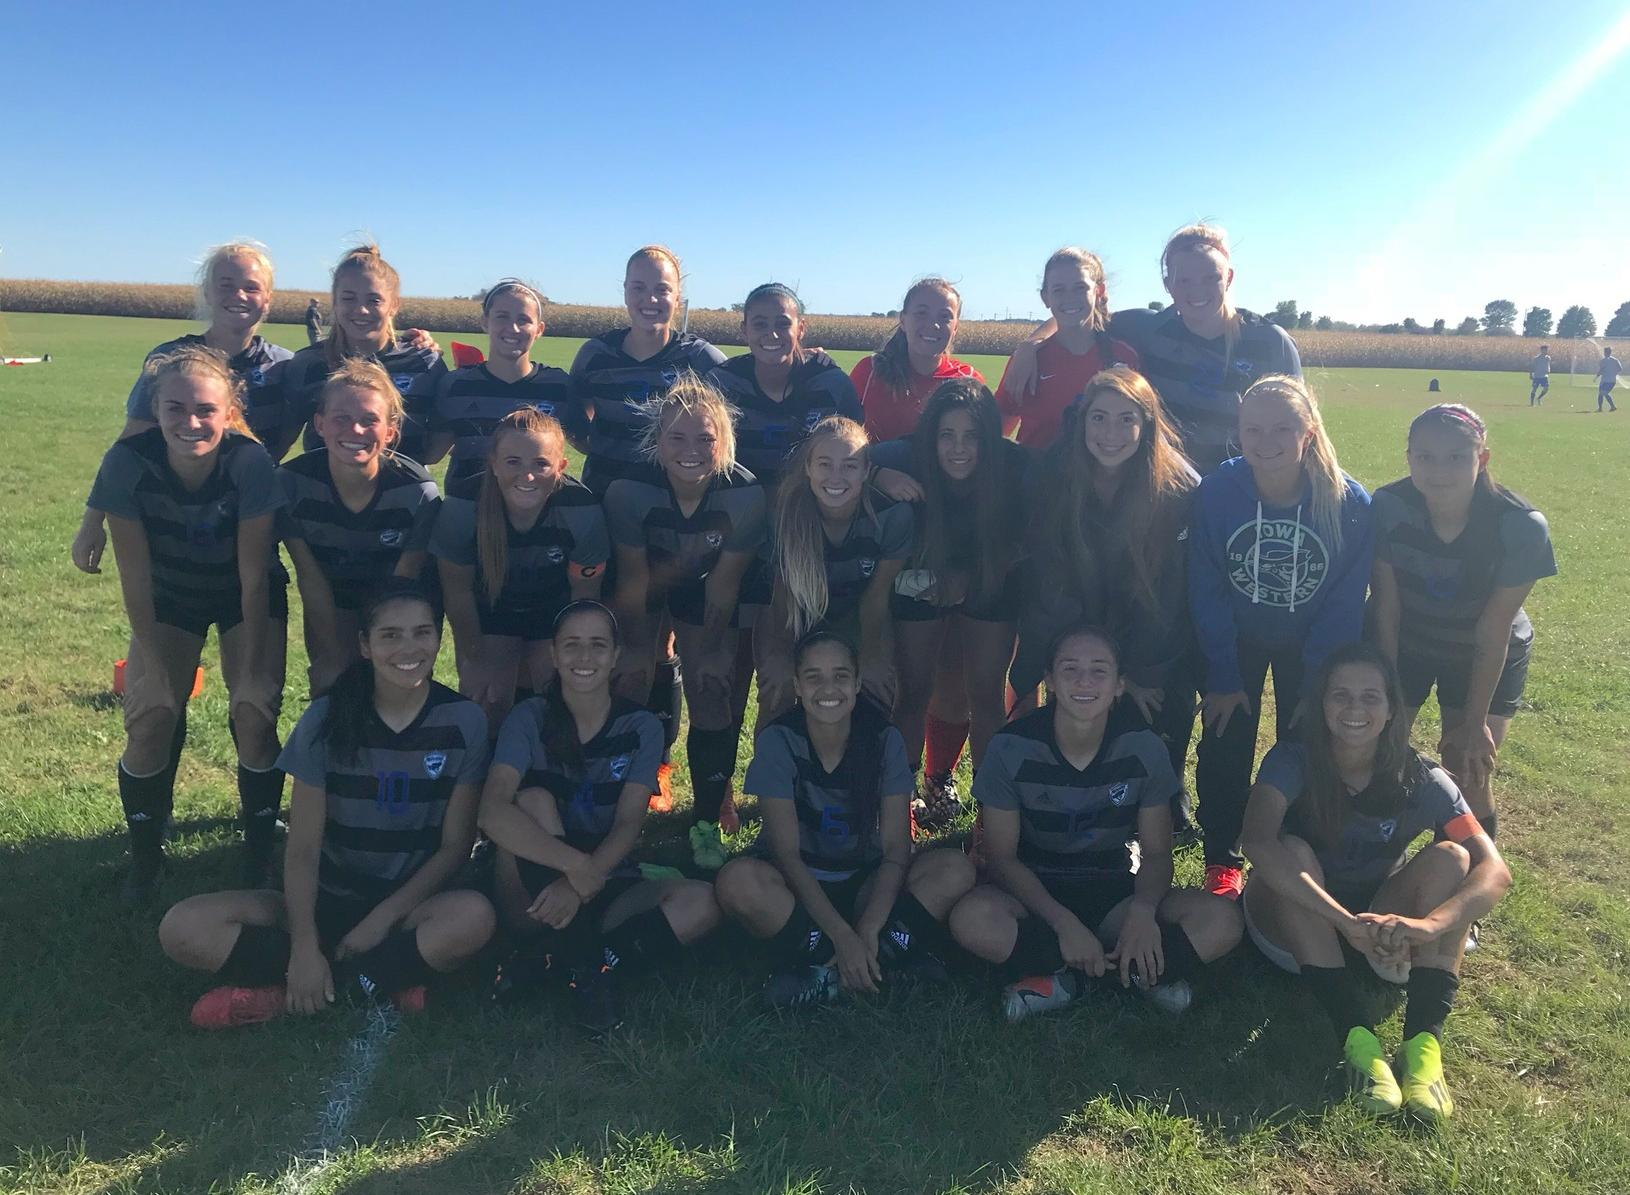 Reivers triumph over NIACC in 10-0 road win